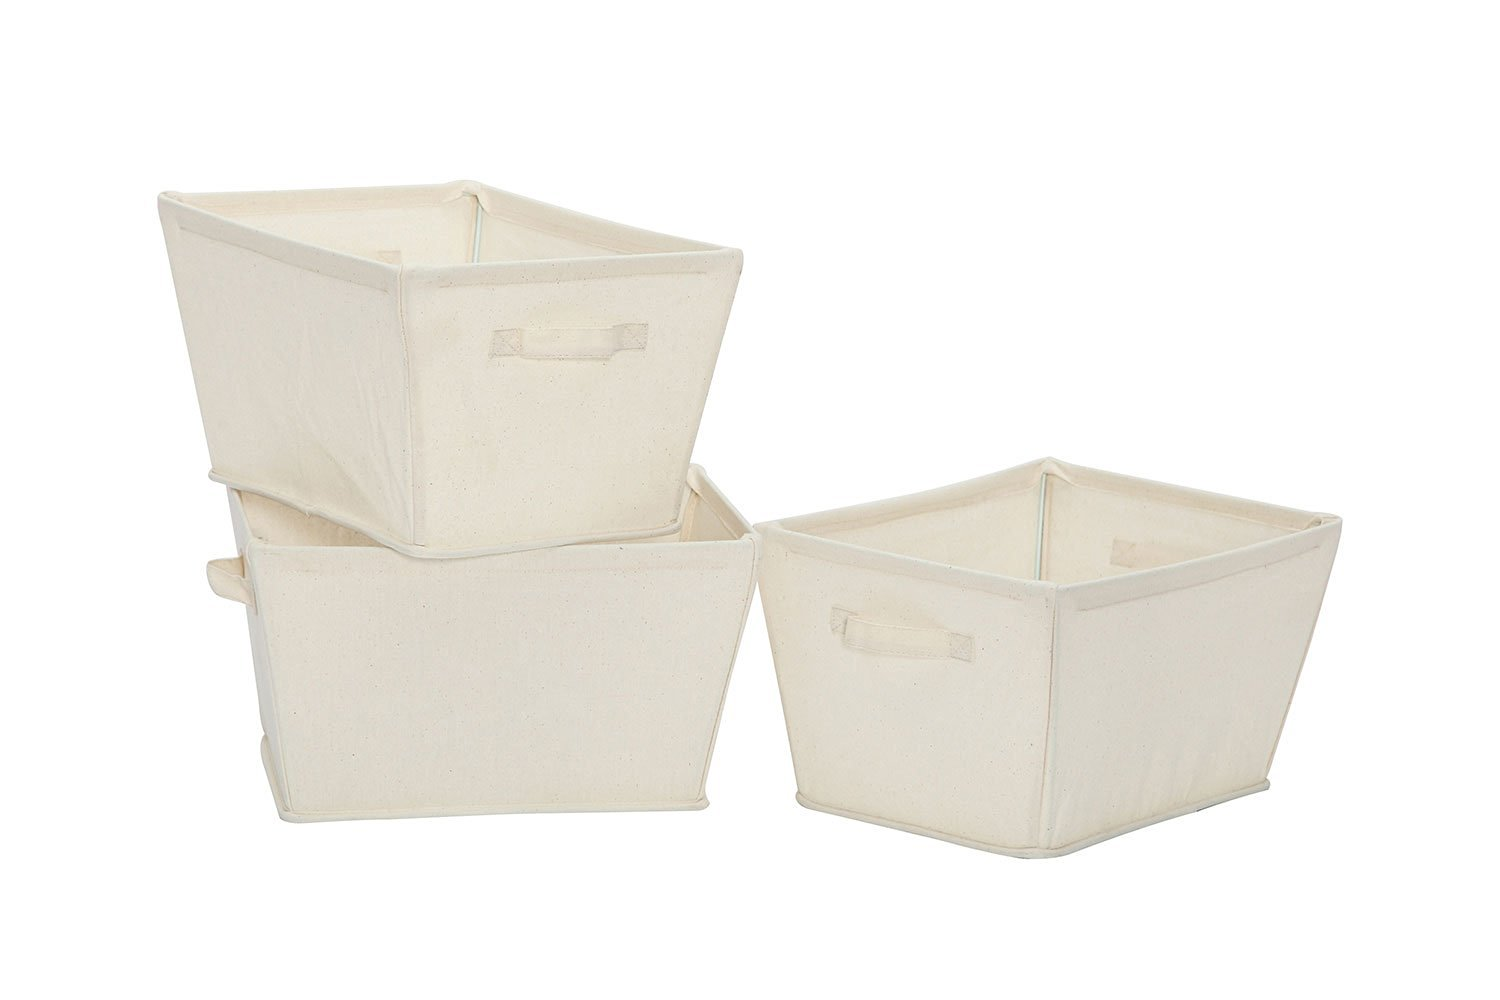 STORAGE MANIAC Large Heavy-Duty Collapsible Canvas Tapered Storage Bin with Handles, White, 3-Pack